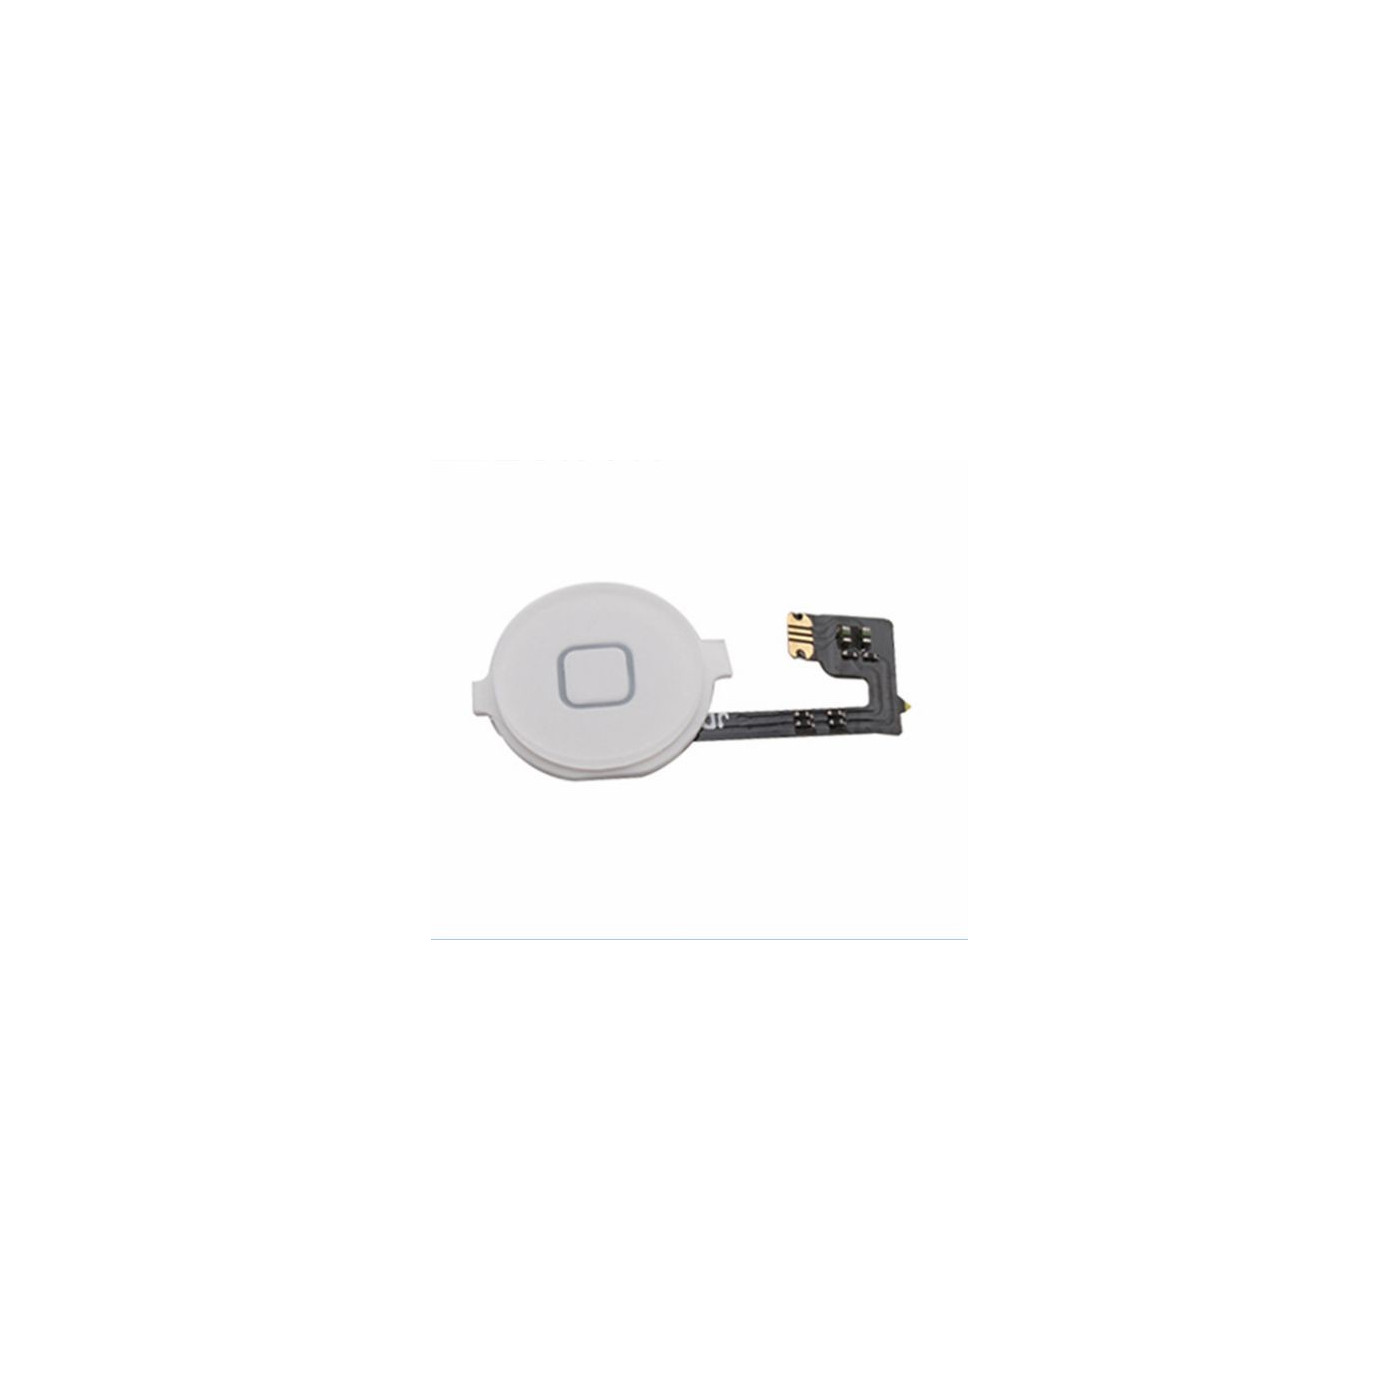 Bouton d'accueil pour apple iphone 4 blanc bouton central curseur plat flex